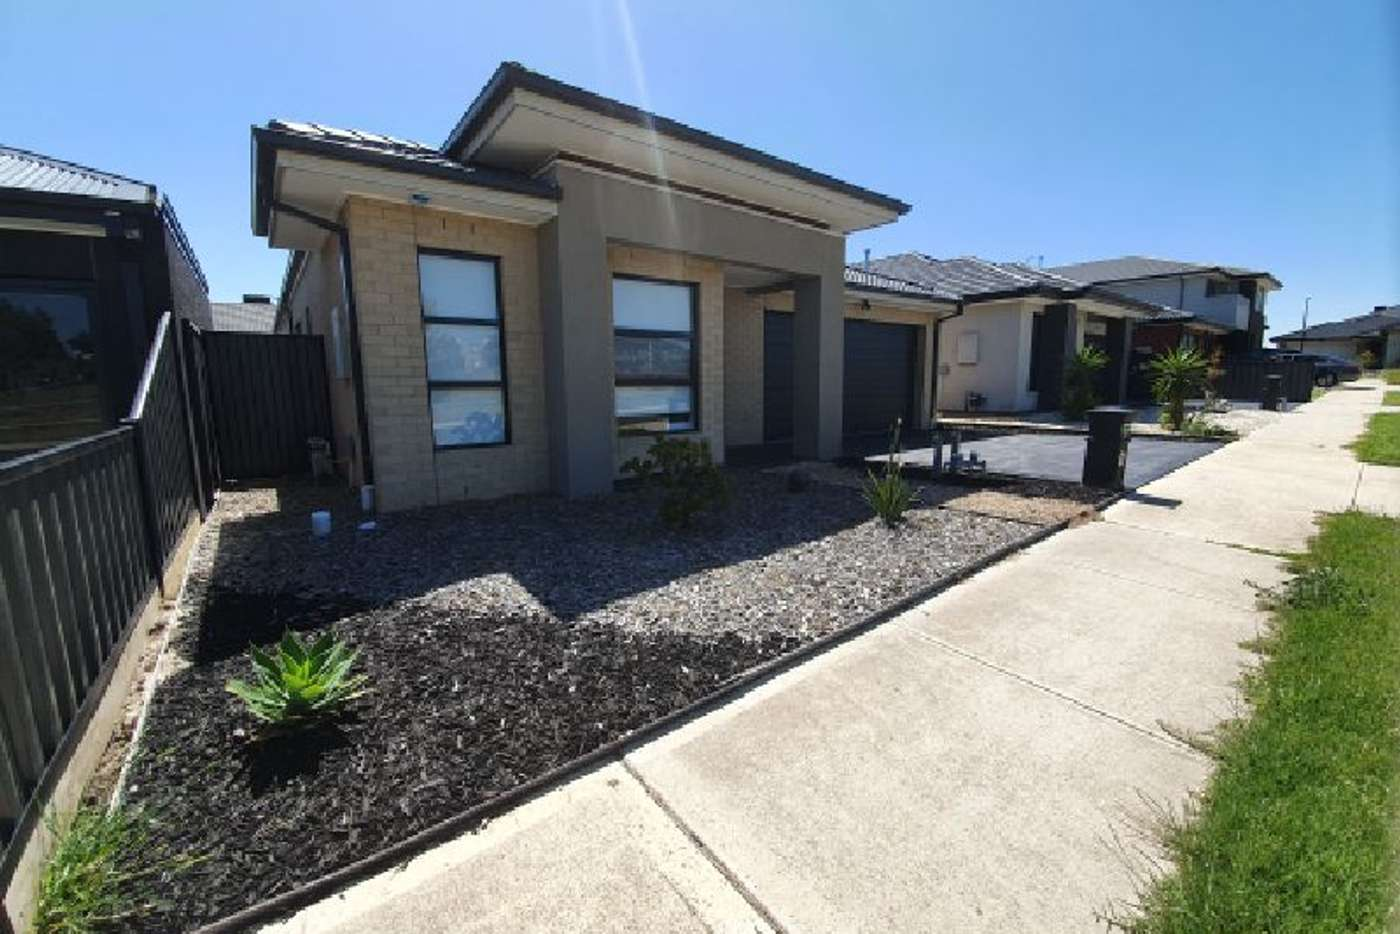 Main view of Homely house listing, 3 Valmont Street, Craigieburn VIC 3064